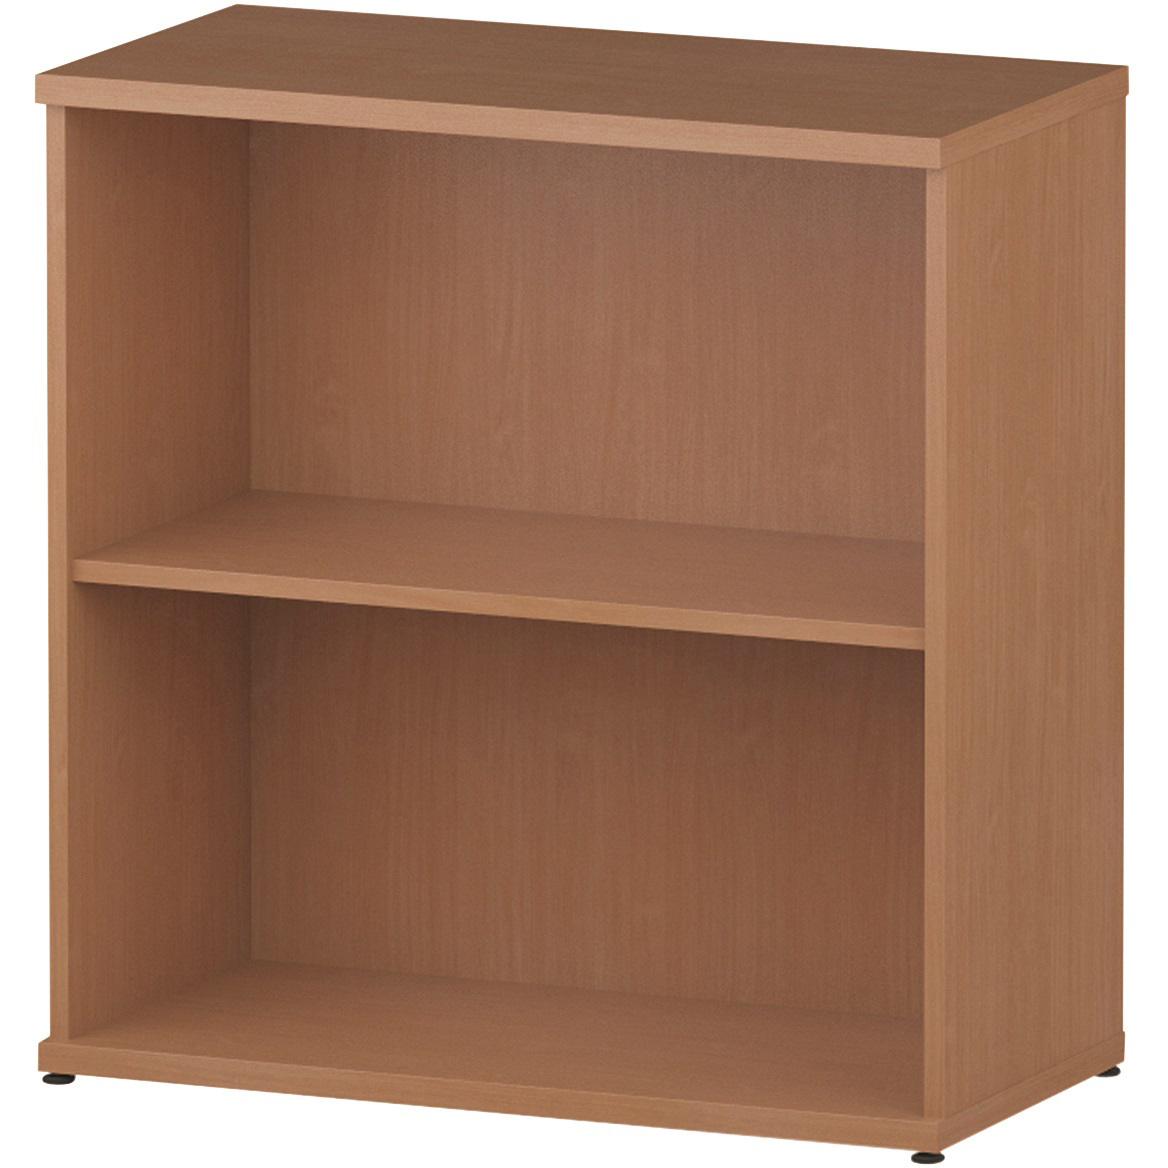 Bookcases Trexus Office Low Bookcase 800x400x800mm 1 Shelf Beech Ref I000049